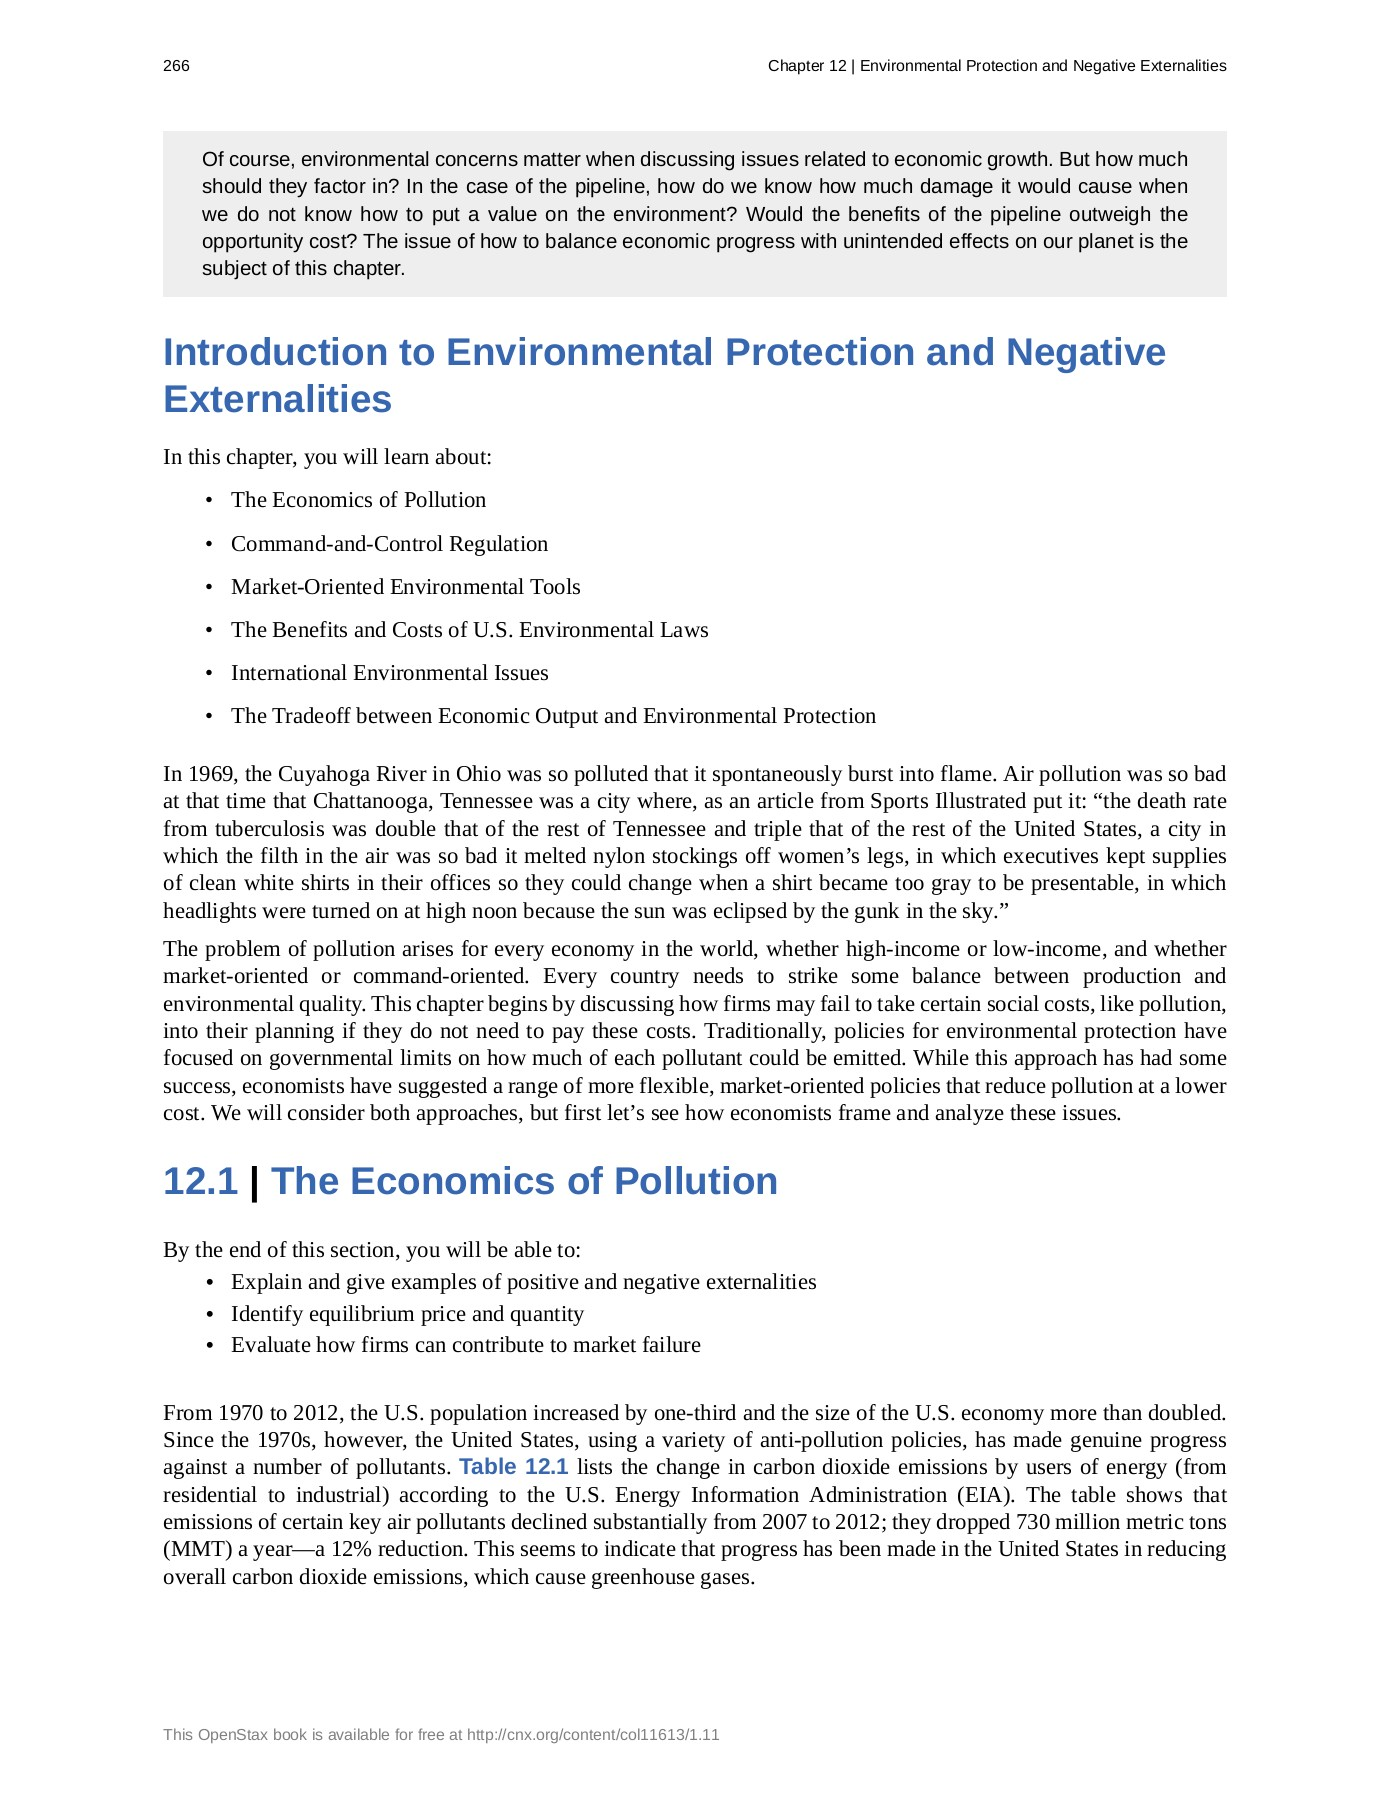 Ch 12 Environmental Protection & Negative Externalities Pages 1 - 23